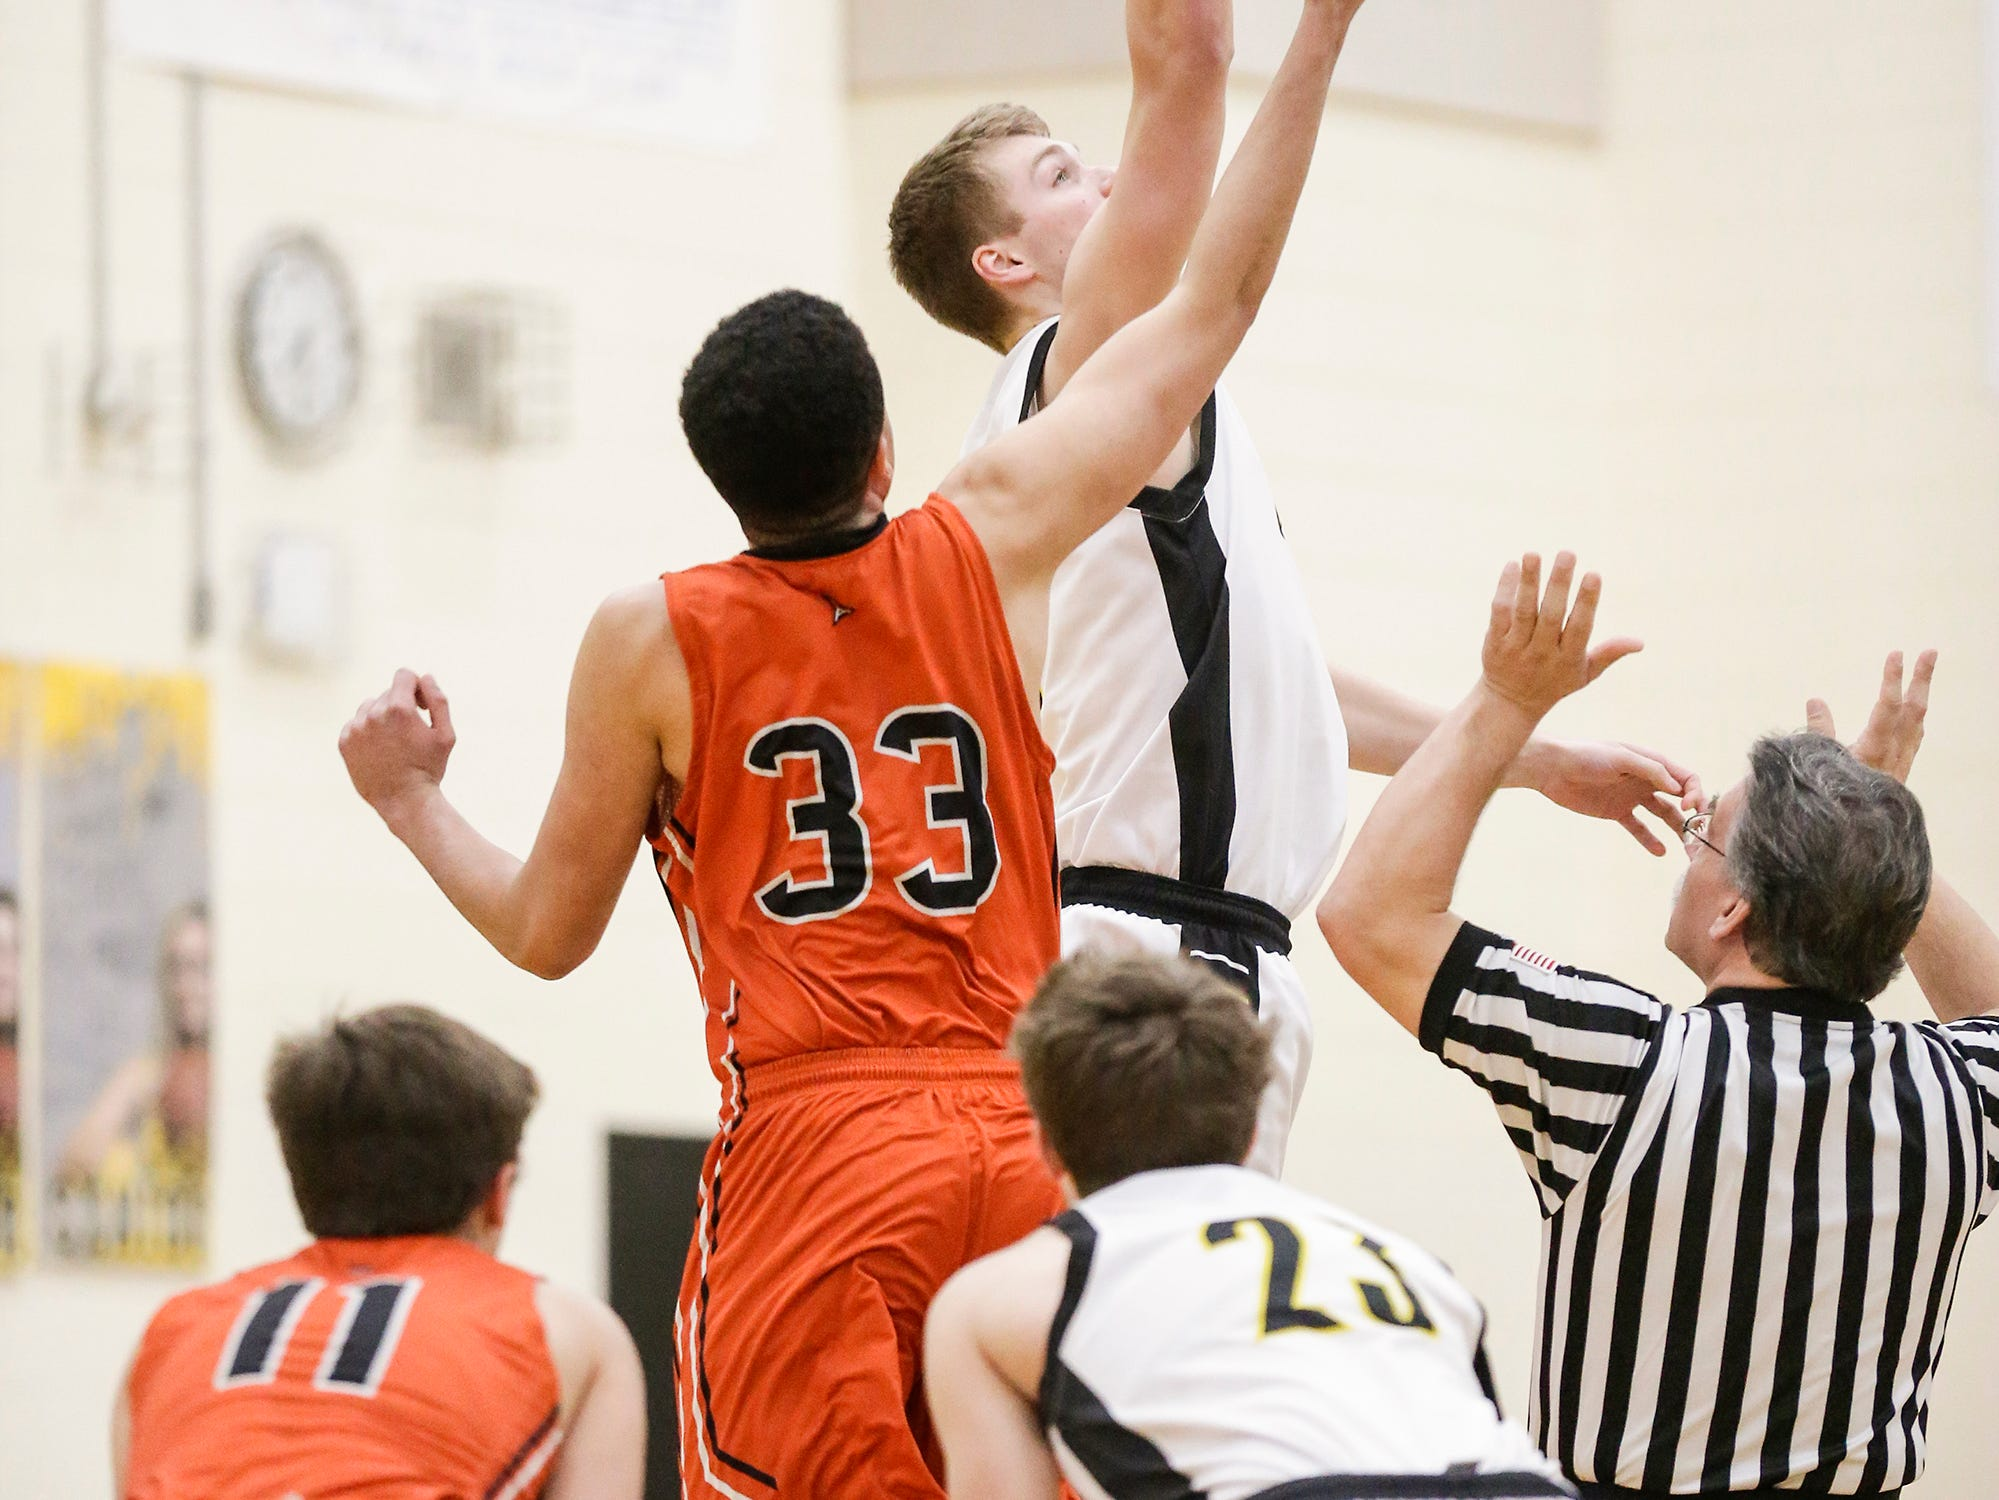 Waupun High School boys basketball's Marcus Domask gets the opening tip off over Plymouth High School's Nick Falls (33) during their game Friday, February 15, 2019 in Waupun. Doug Raflik/USA TODAY NETWORK-Wisconsin